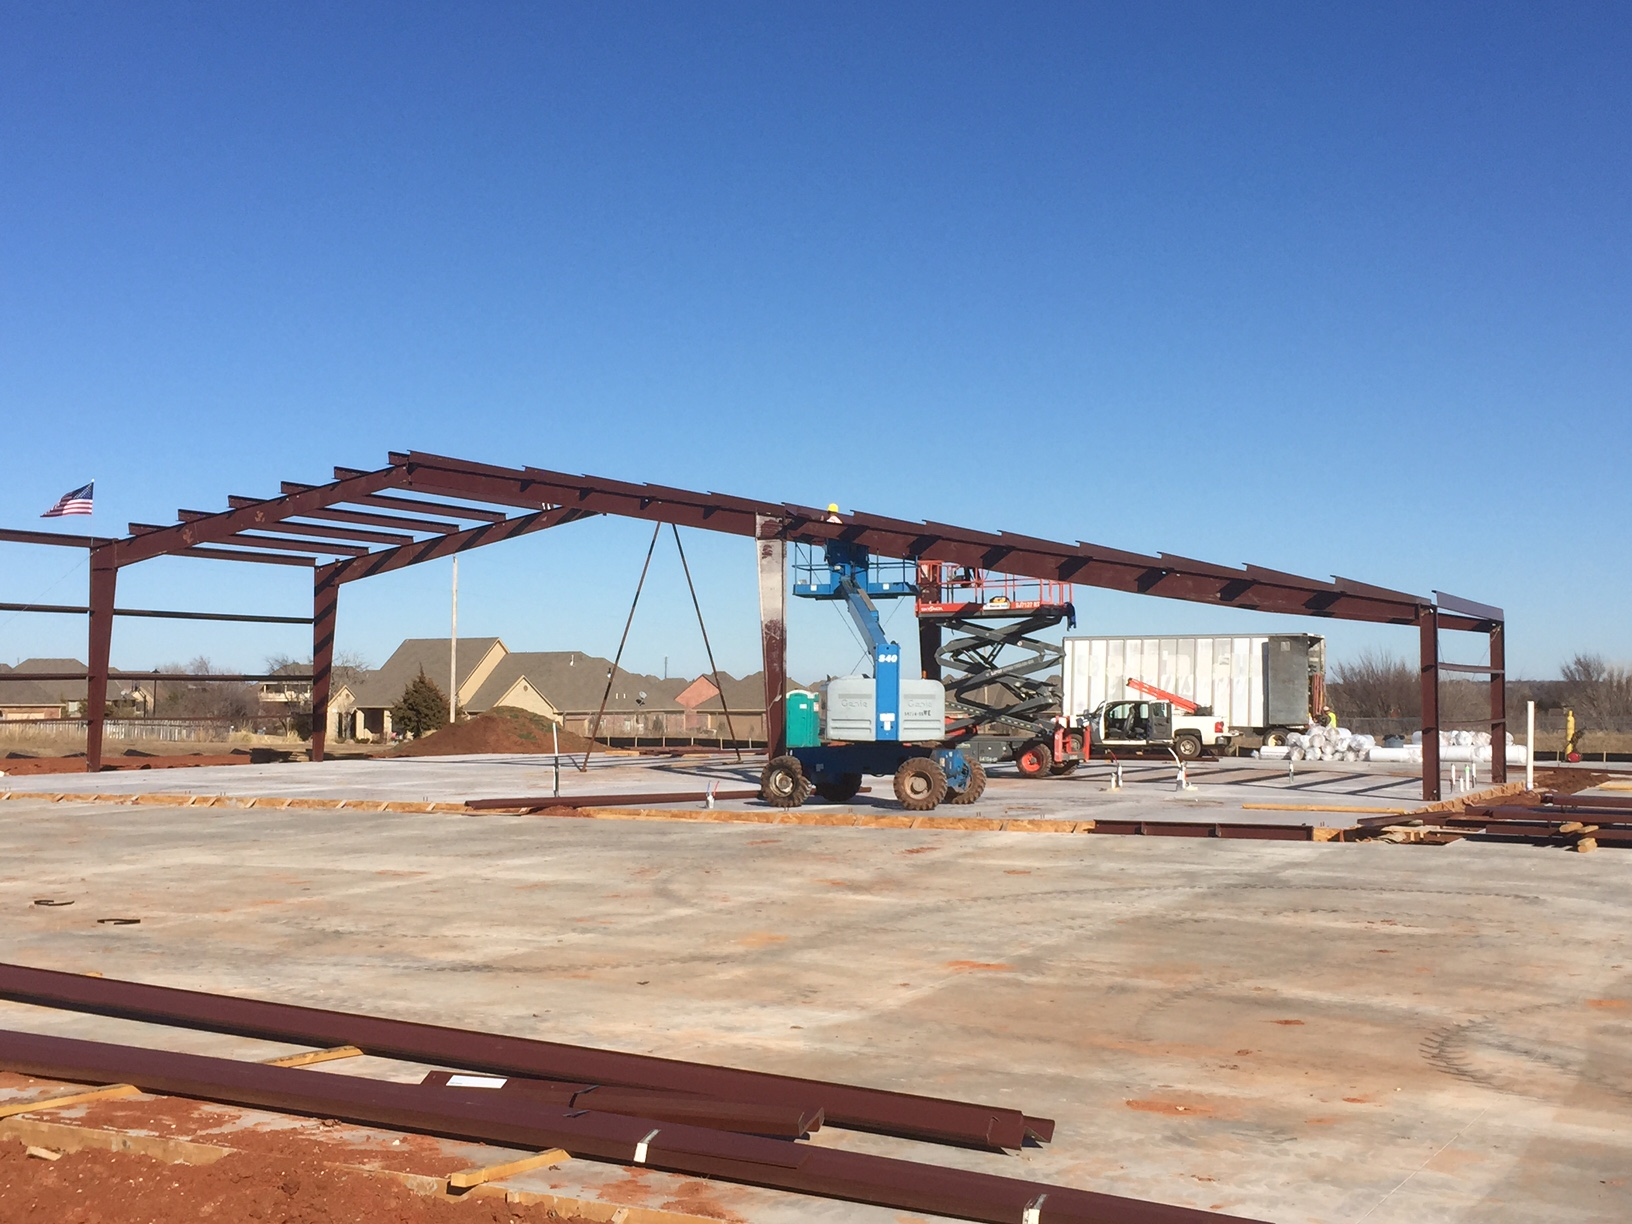 Government Fire Station Construction Steel Deer Creek Edmond